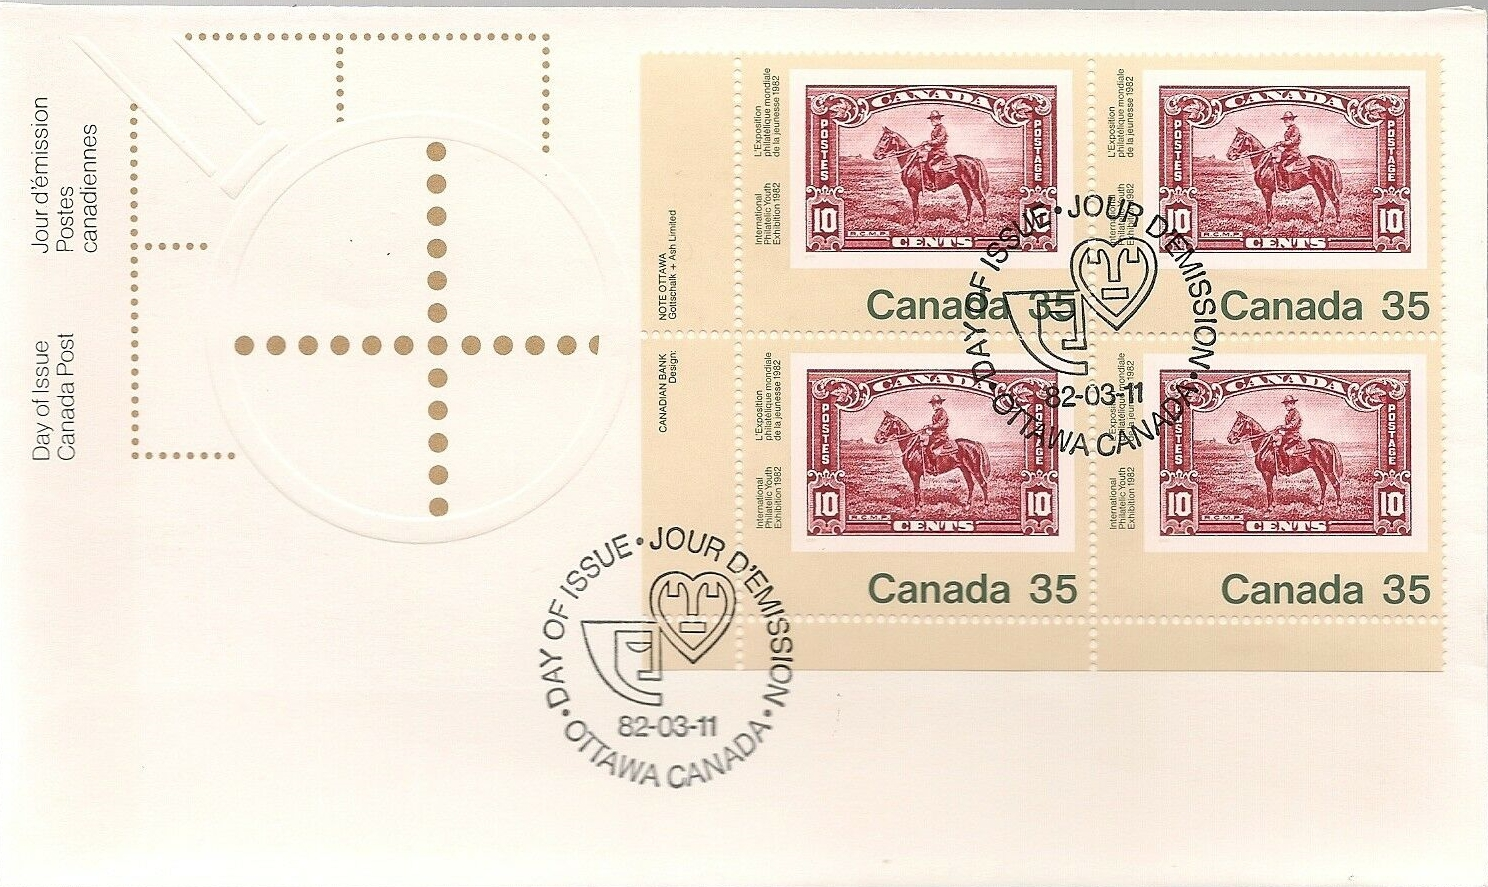 Canada - Scott #911 (1982) first day cover, block of 4